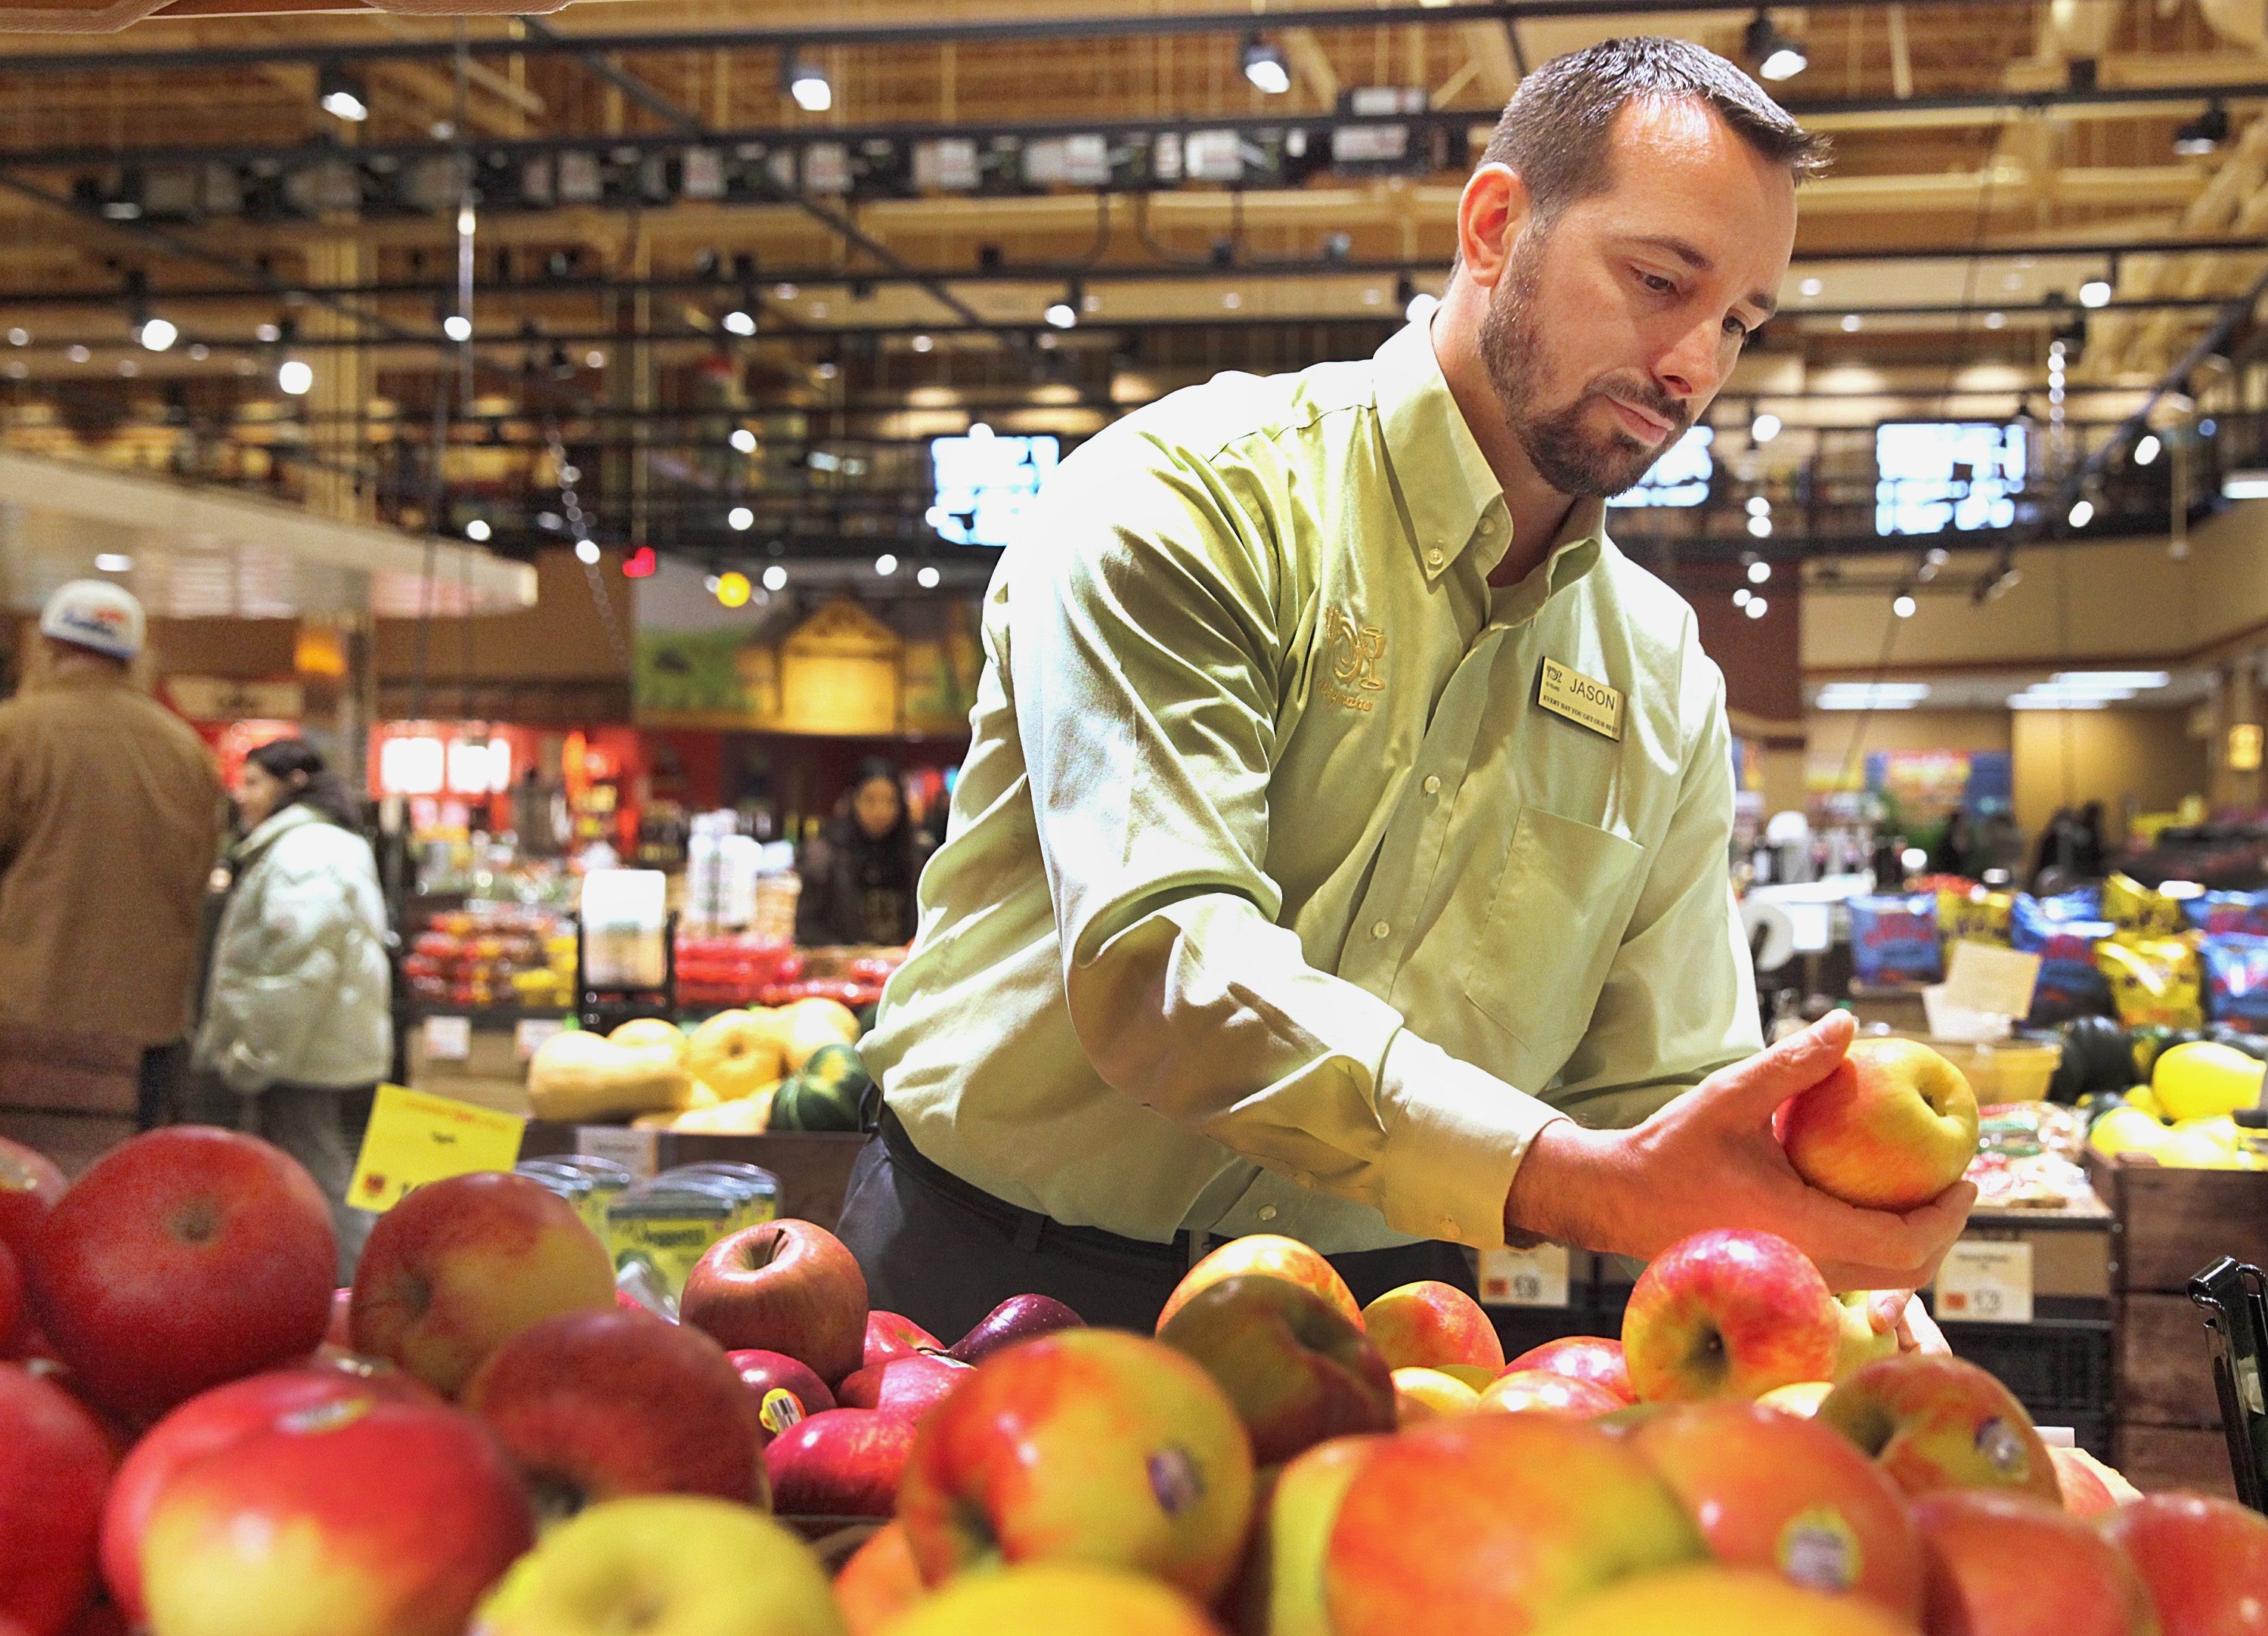 Wegmans topped Publix Super Markets and Trader Joe's to win a survey that judged America's grocery retailers.